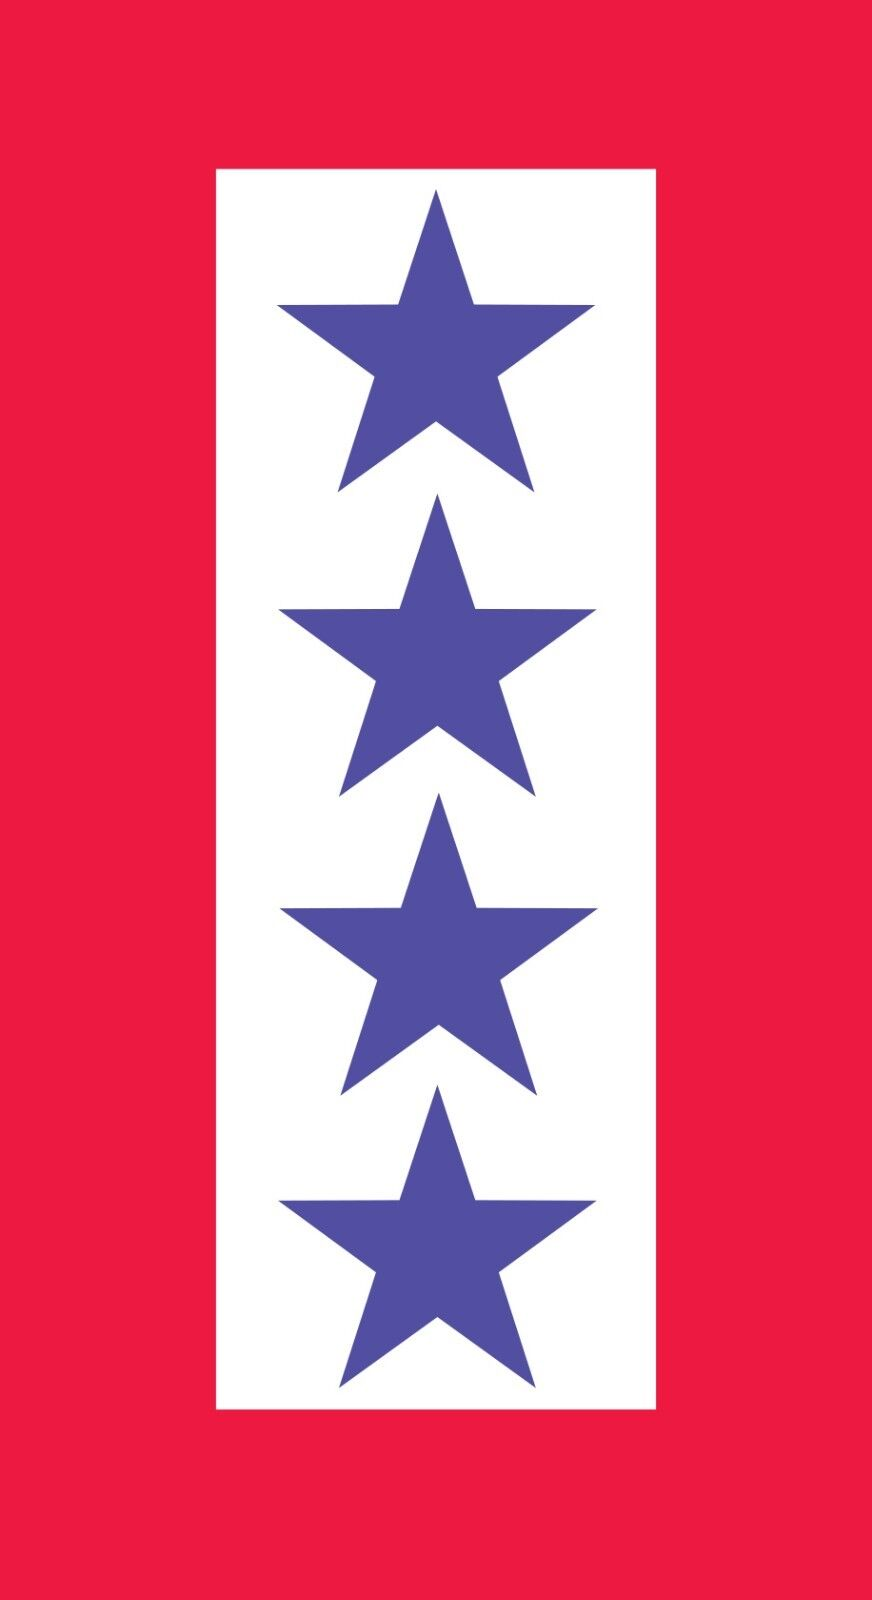 FOUR 4 Blau STAR MOTHER'S SERVICE FLAG VINYL DECAL DECAL DECAL son daughter army navy usmc 7b81a9